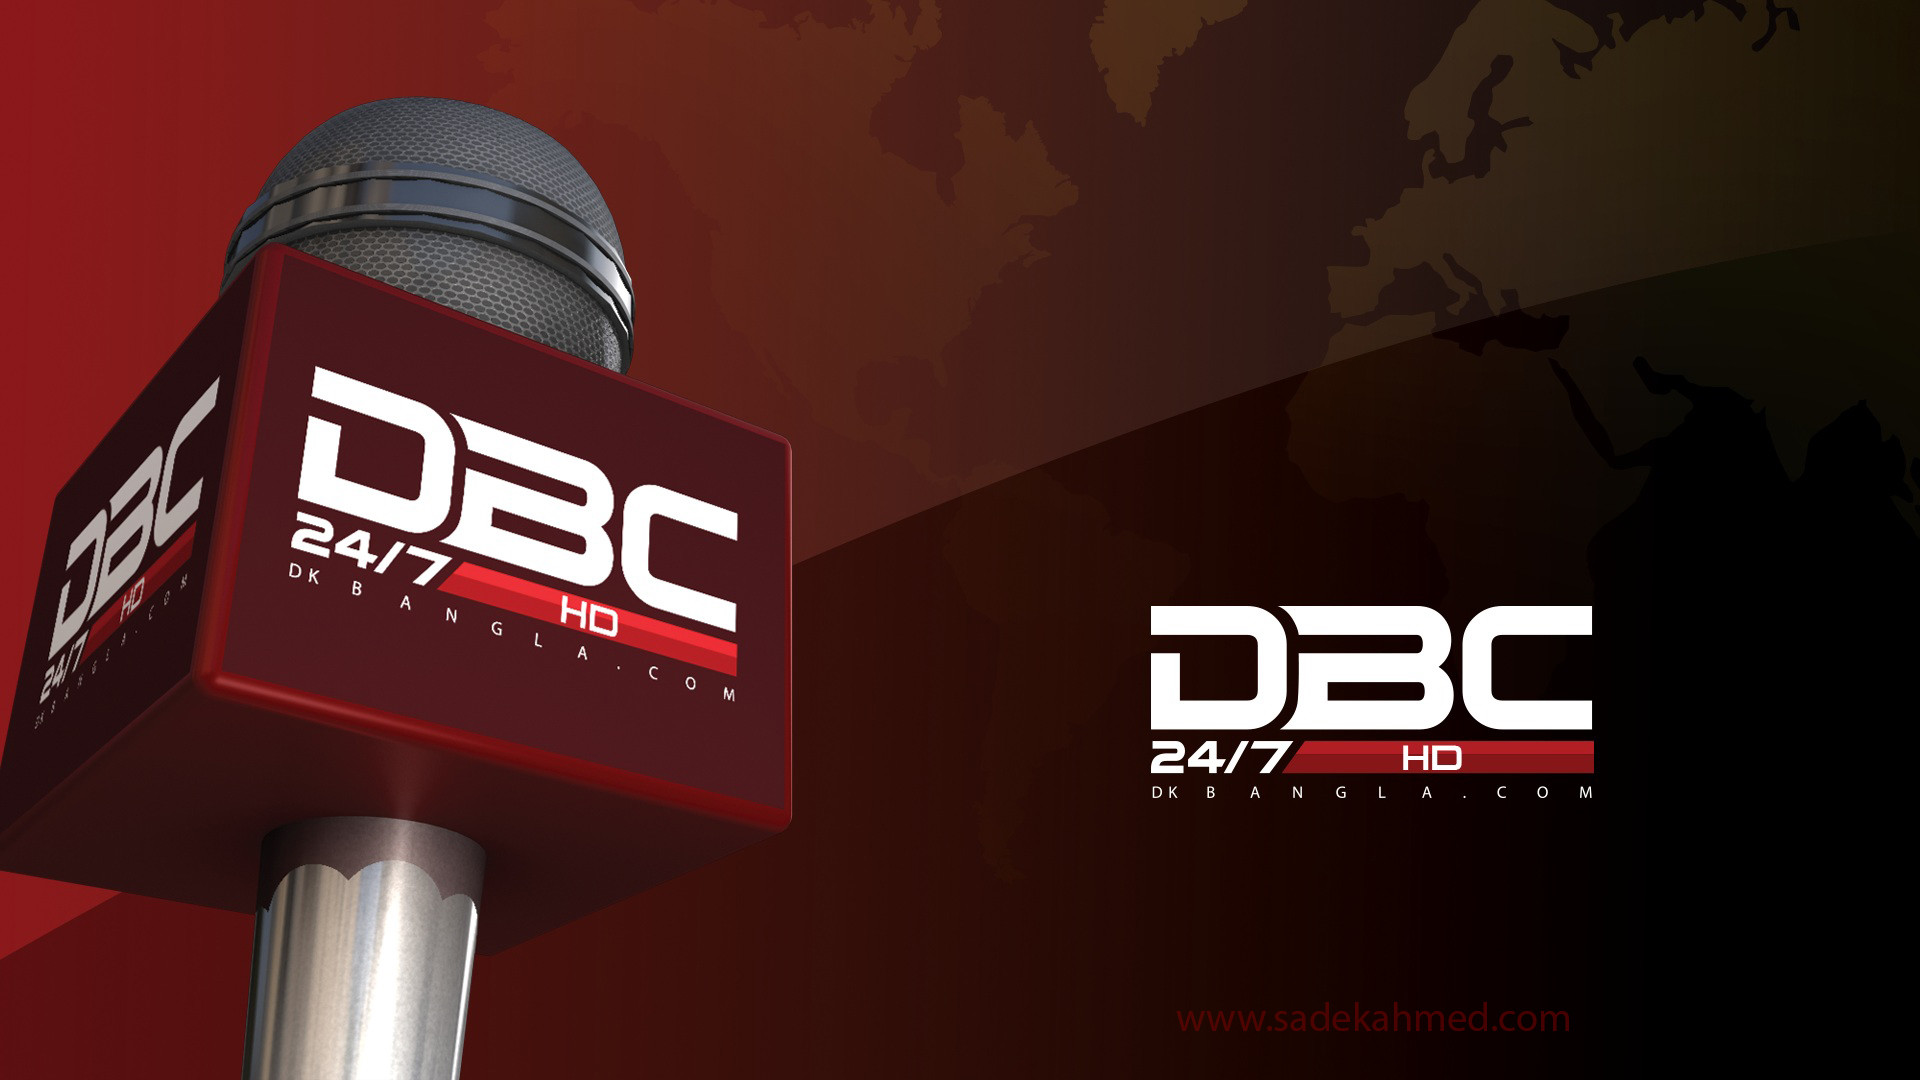 ArtStation - DBC NEWS | 24 x 7 | LIVE | SATELLITE NEWS CHANNEL of